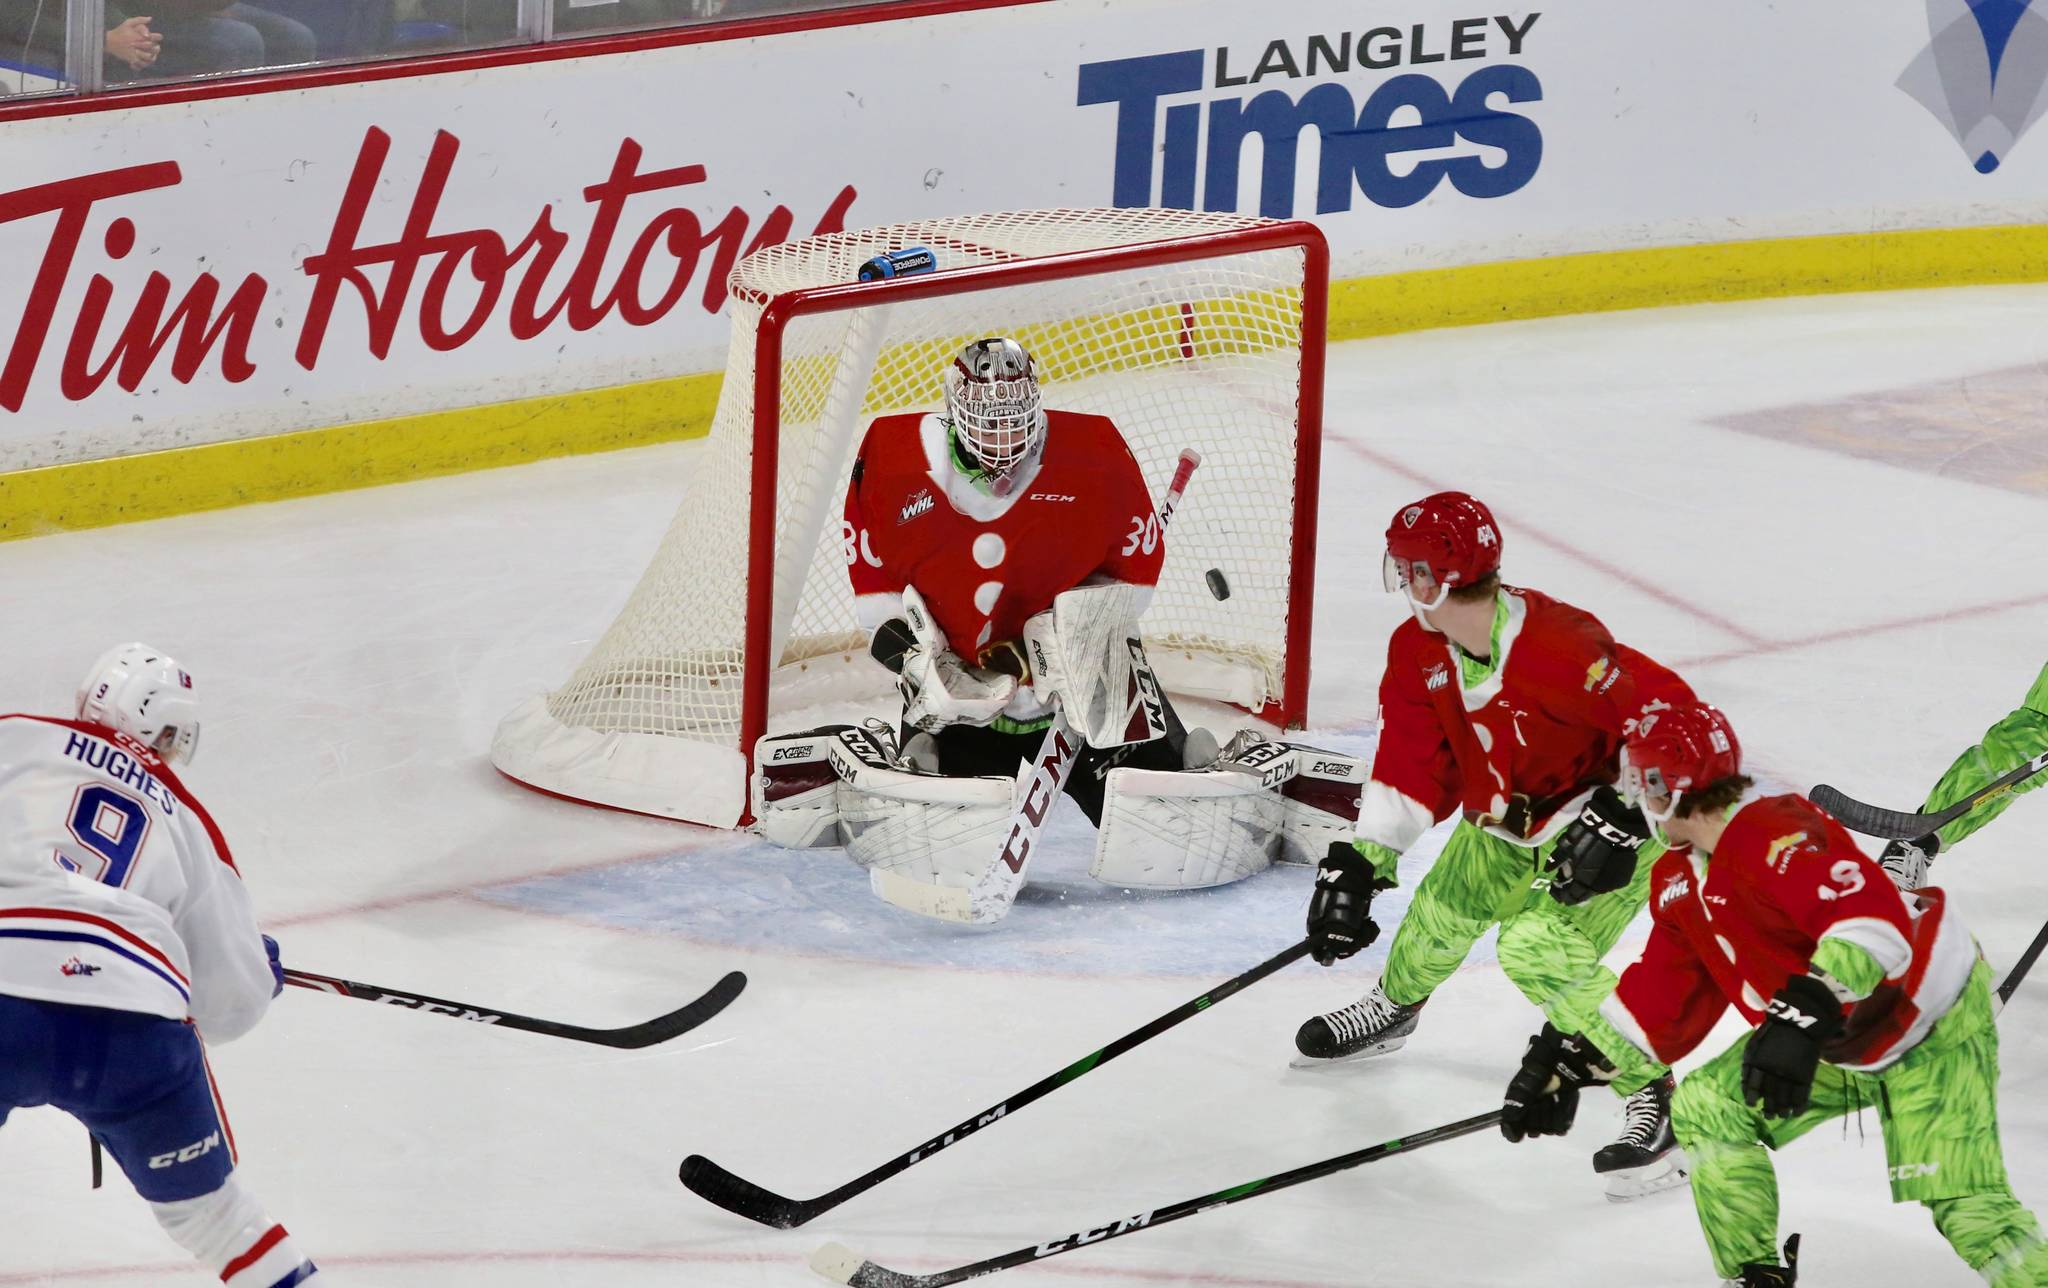 Vancouver Giants fell 2-1 to the Spokane Chiefs Friday night (Dec. 6) at Langley Events Centre. (Rik Fedyck/Special to Langley Advance Times)